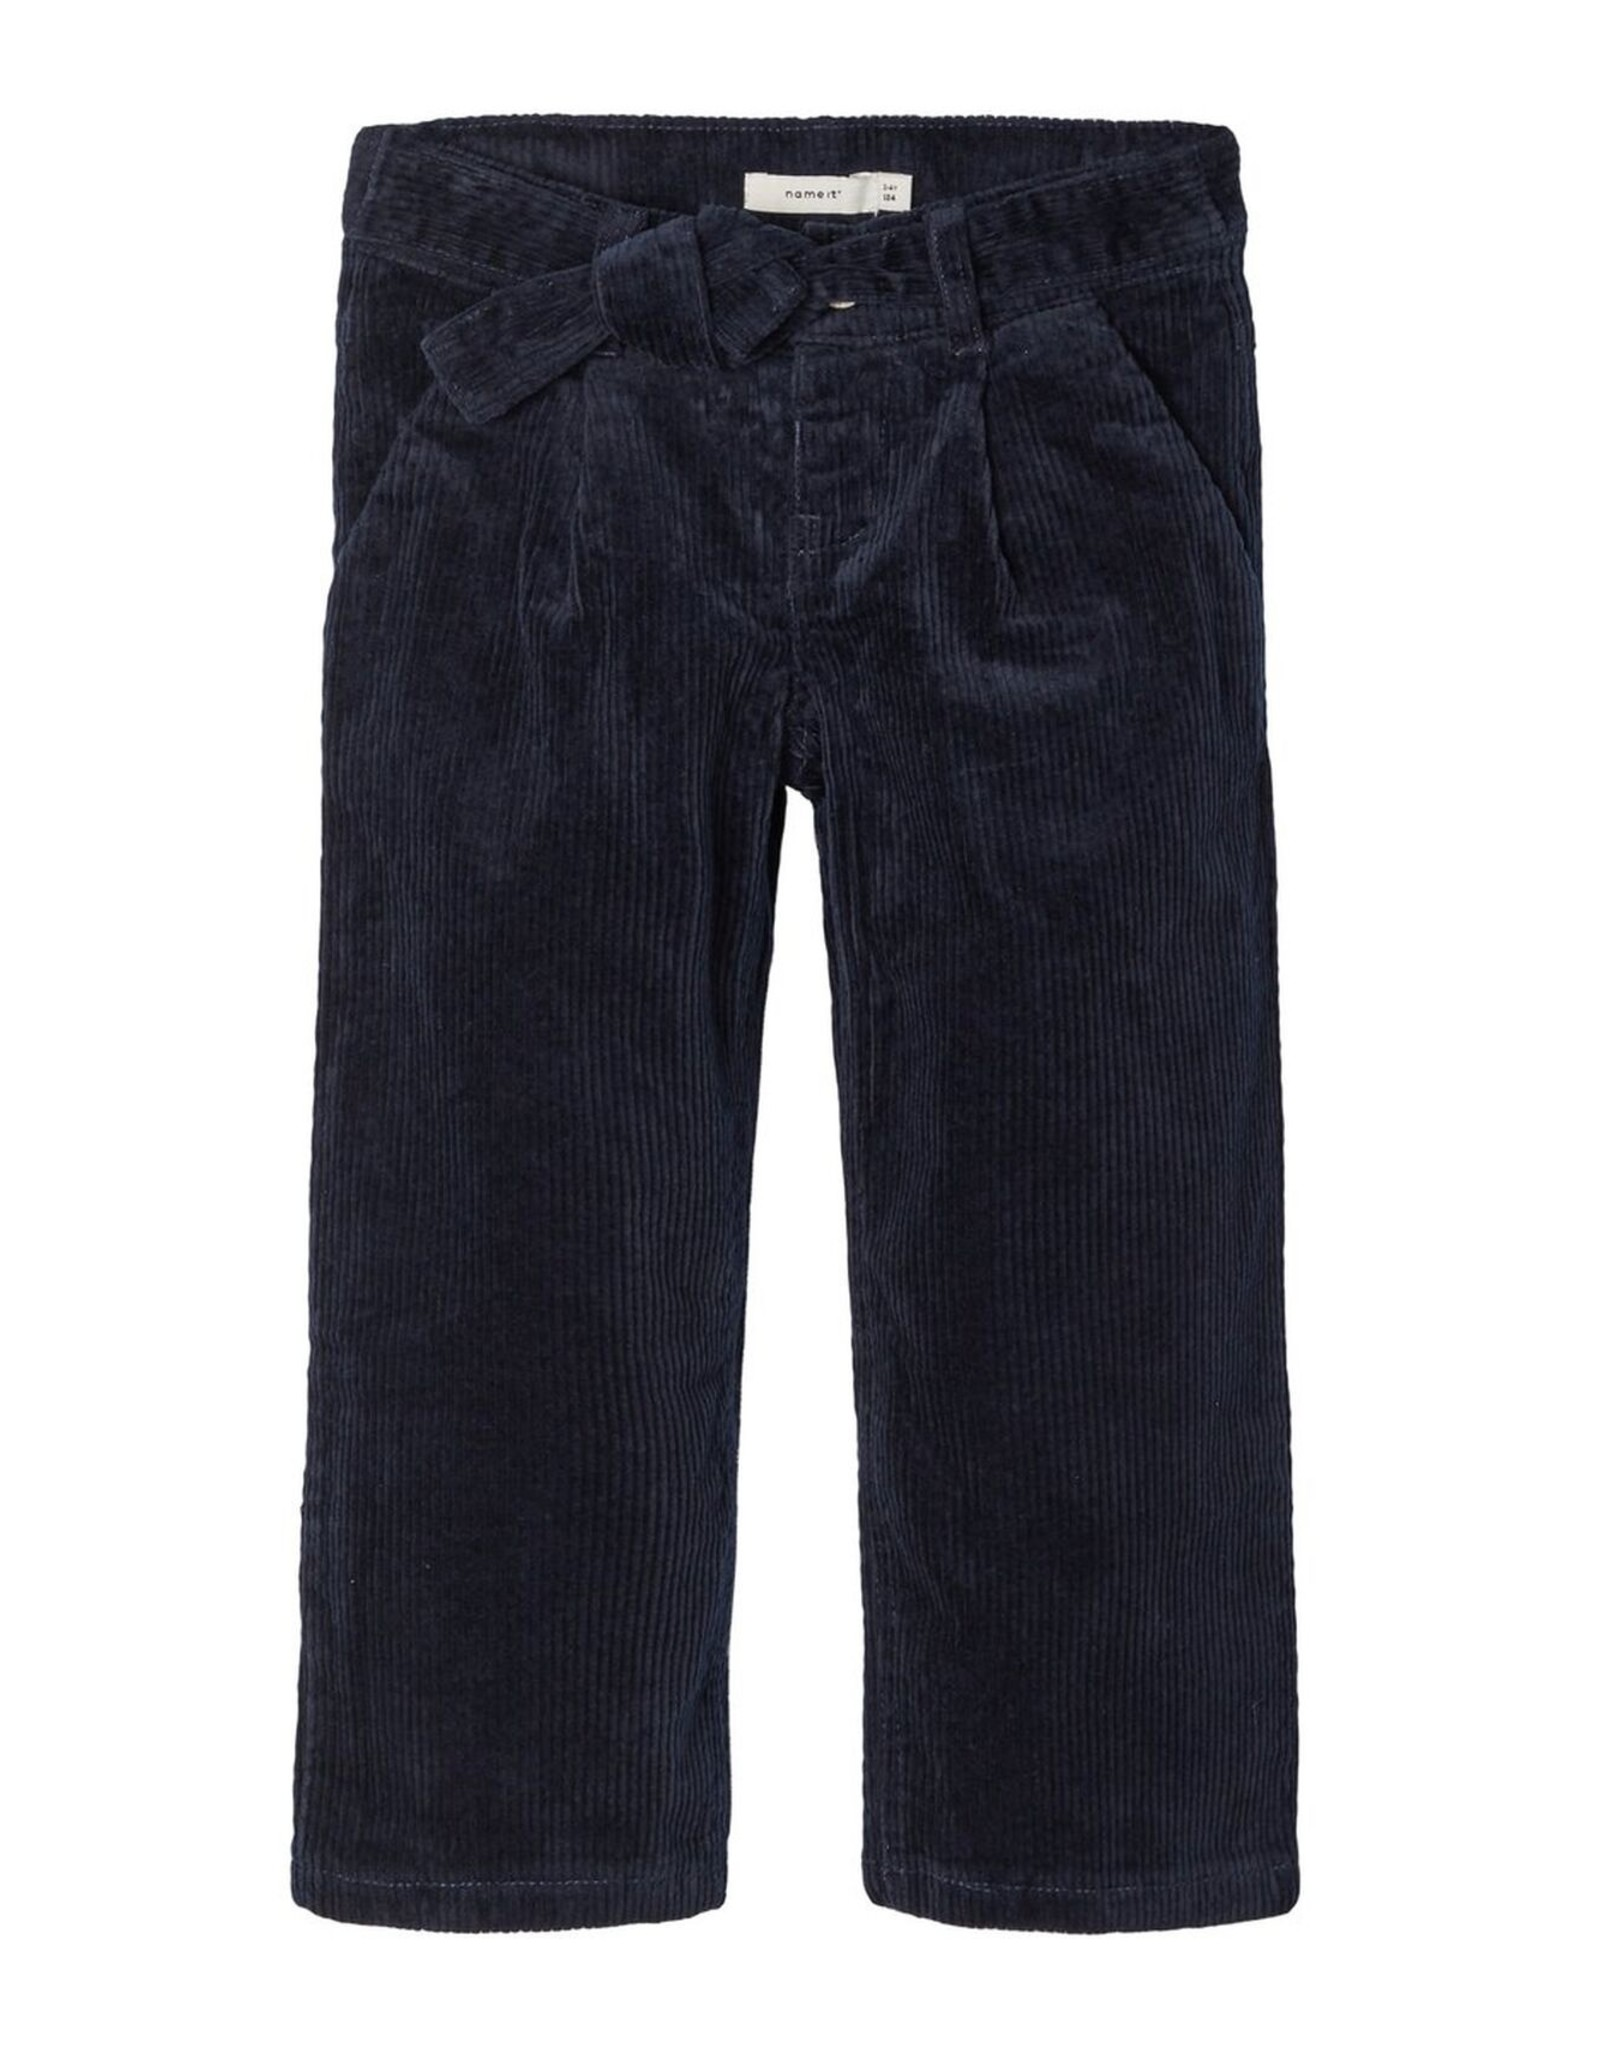 Name It Corduroy brede broek - 7/8ste model